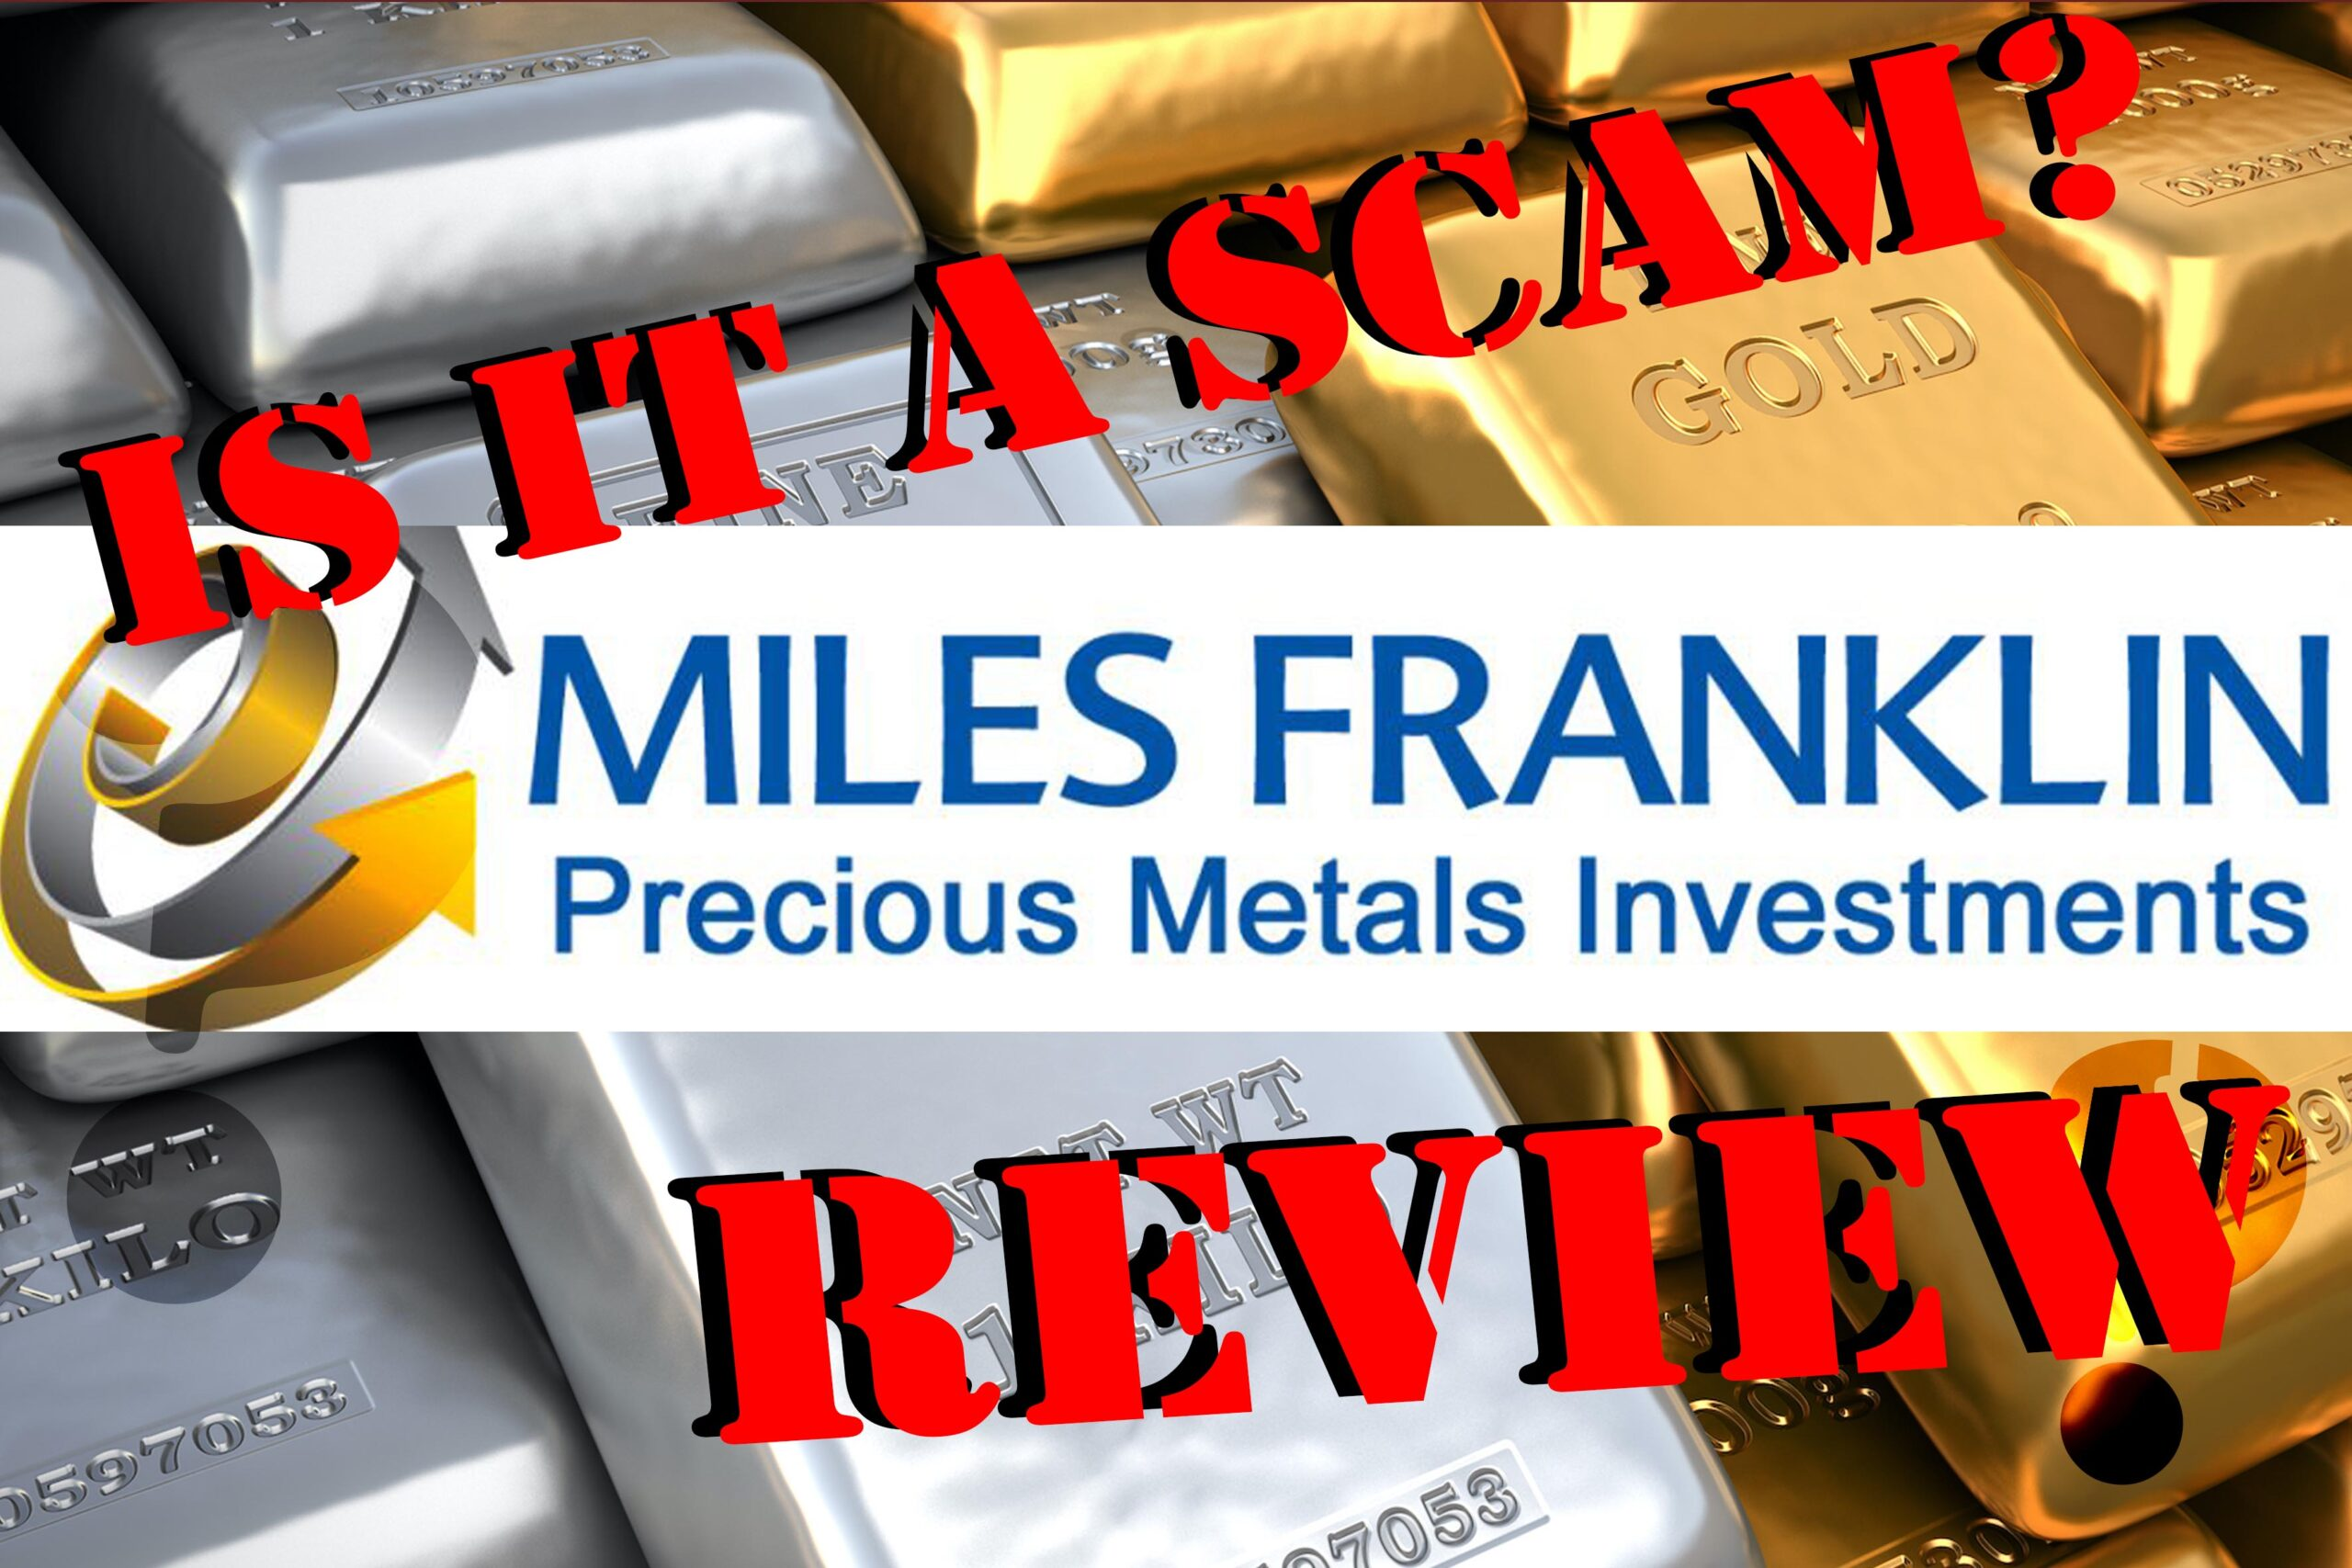 Miles Franklin Review